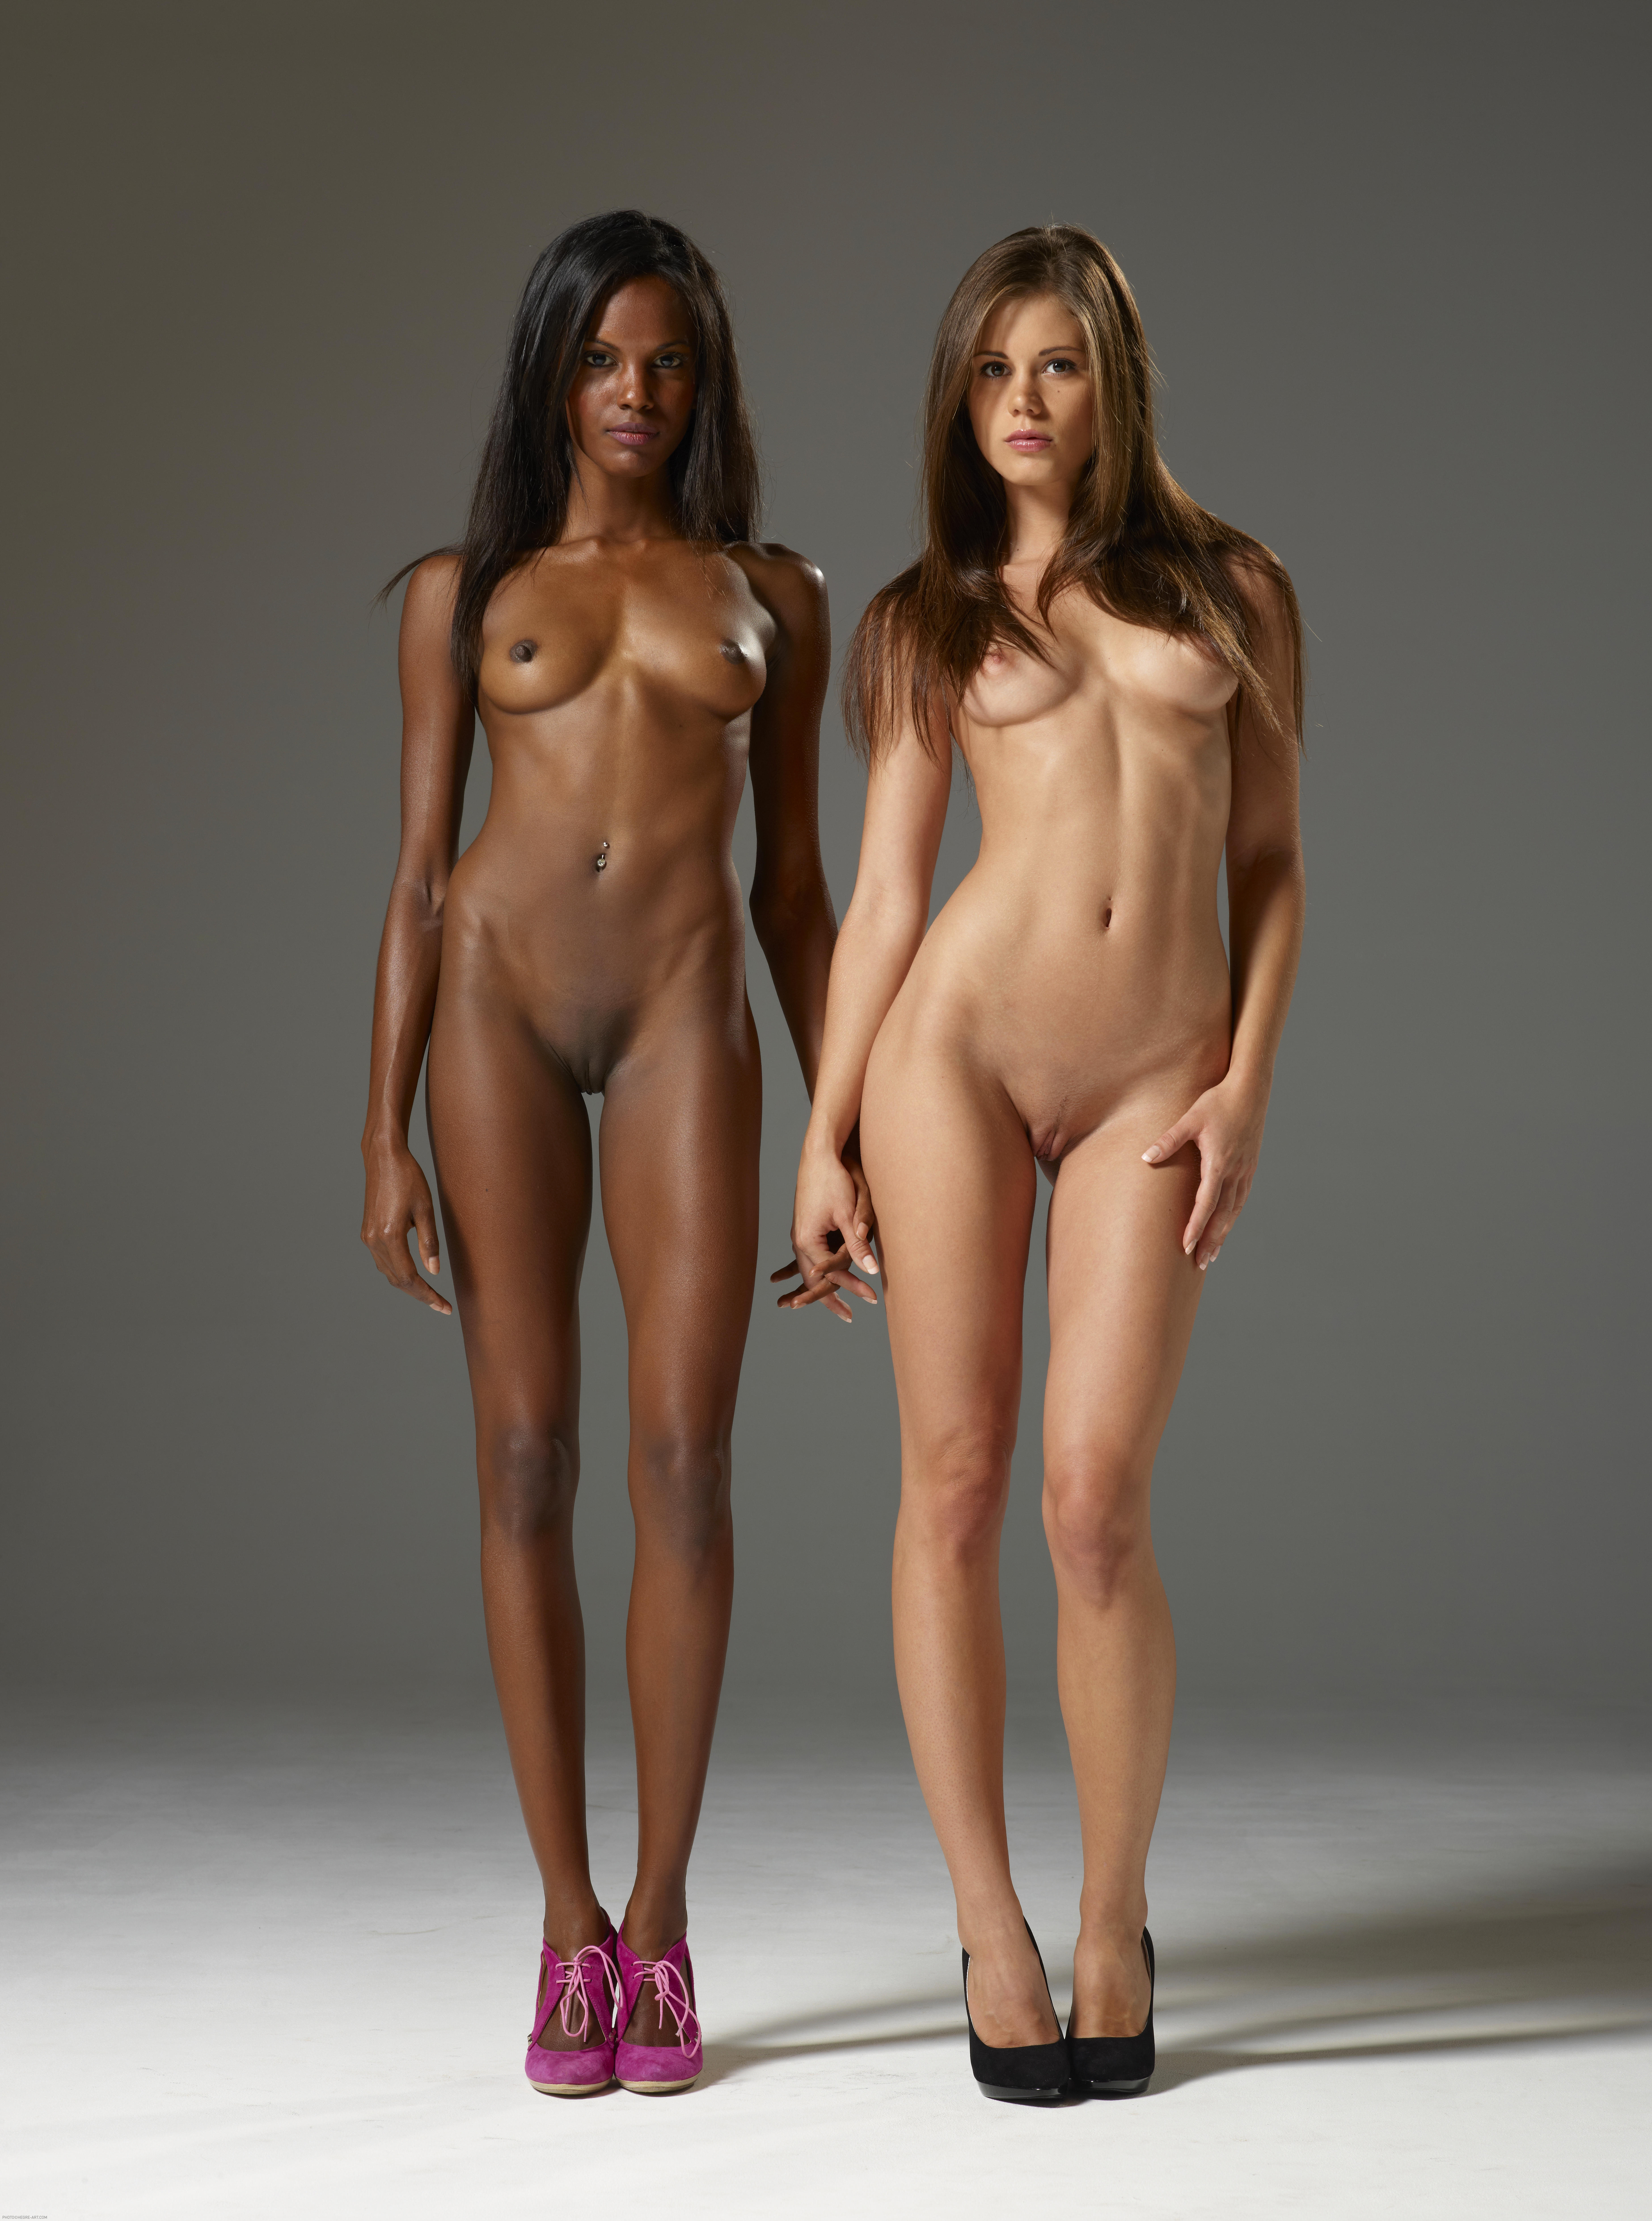 Naked Girls In A Hot Interracial Pose Off